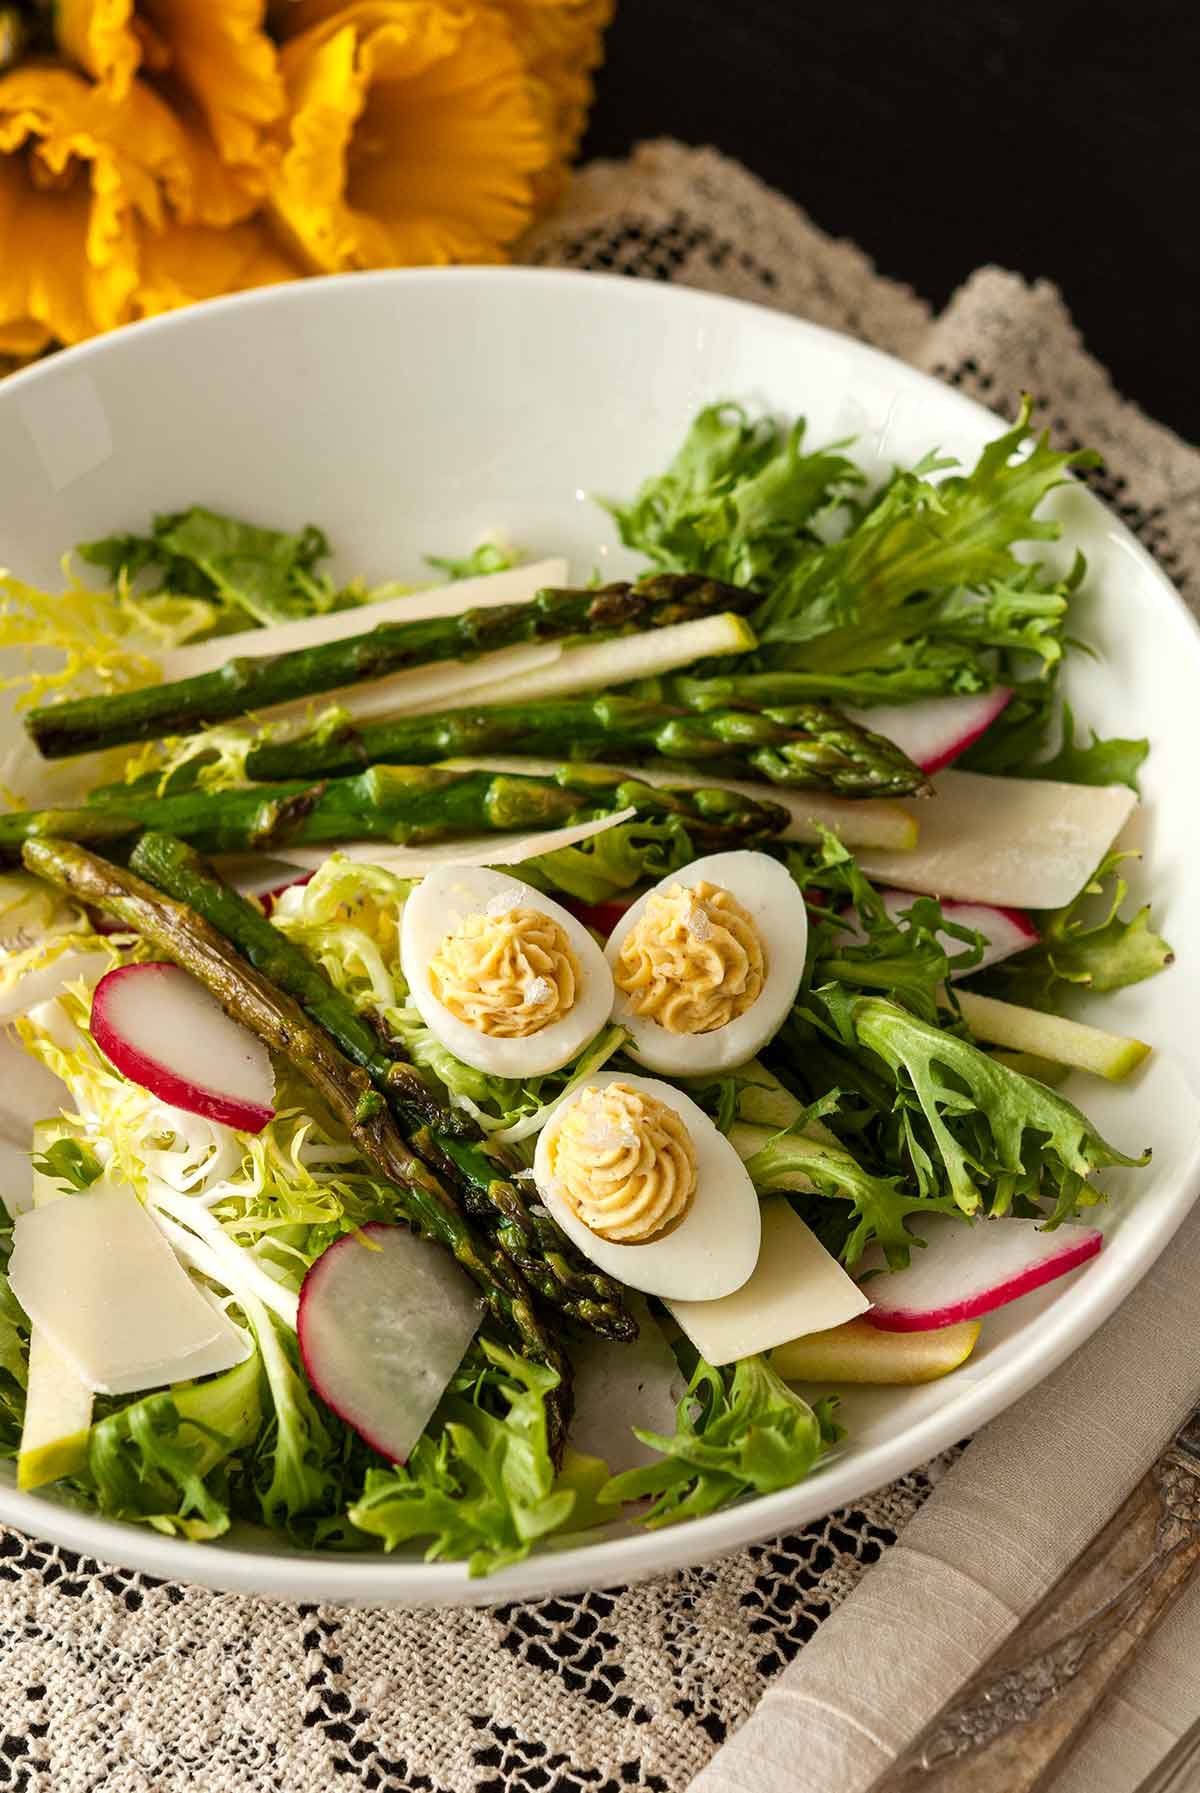 A salad in a bowl on a lace table cloth, topped with small deviled eggs with flowers in the background.